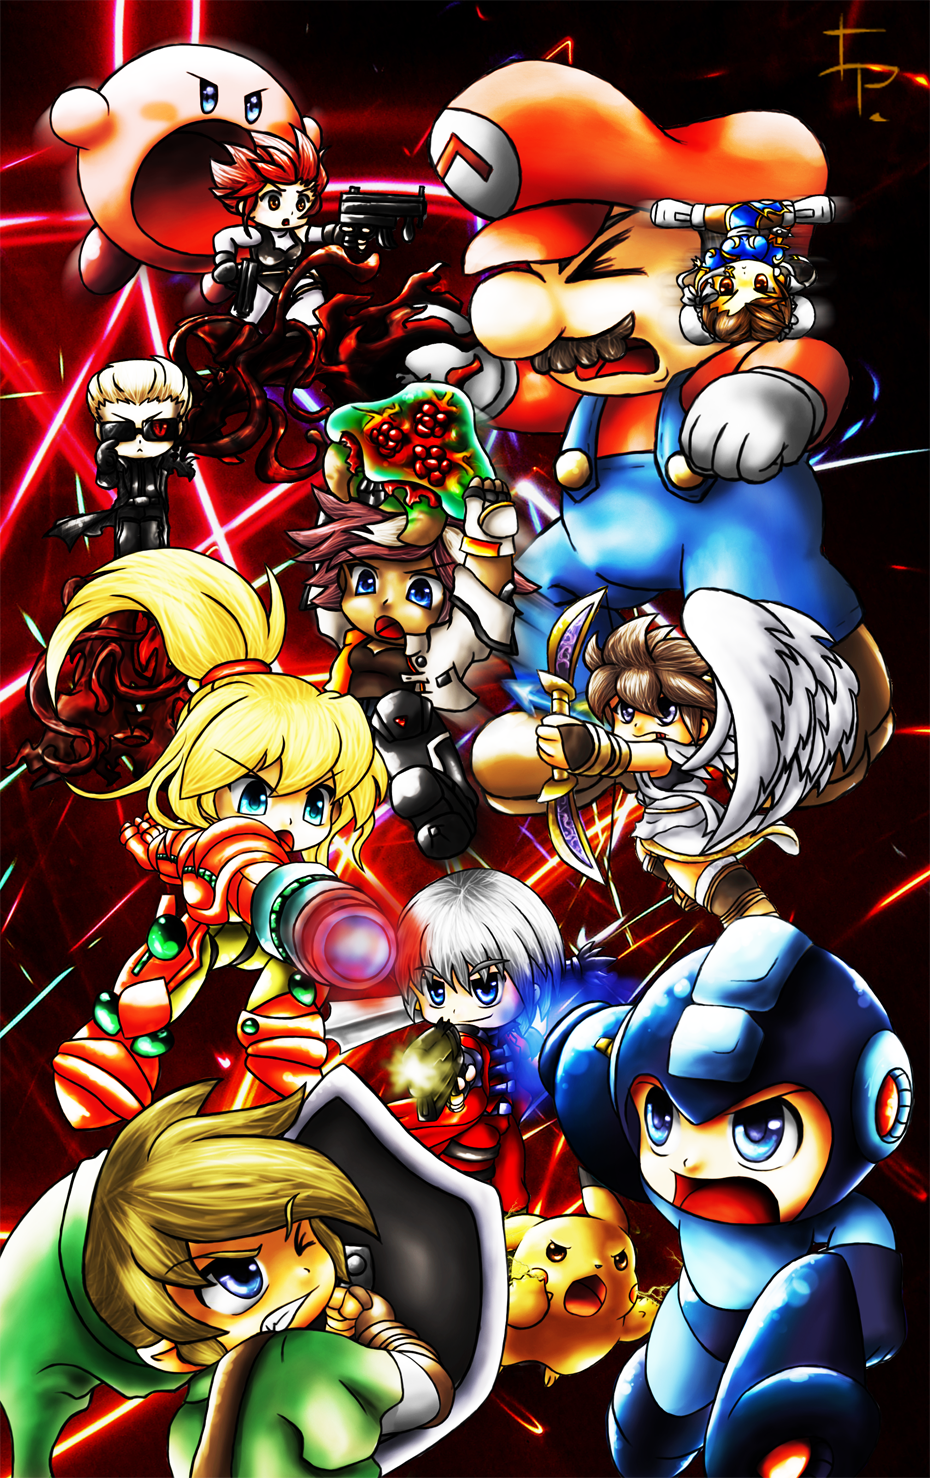 Nintendo vs Capcom